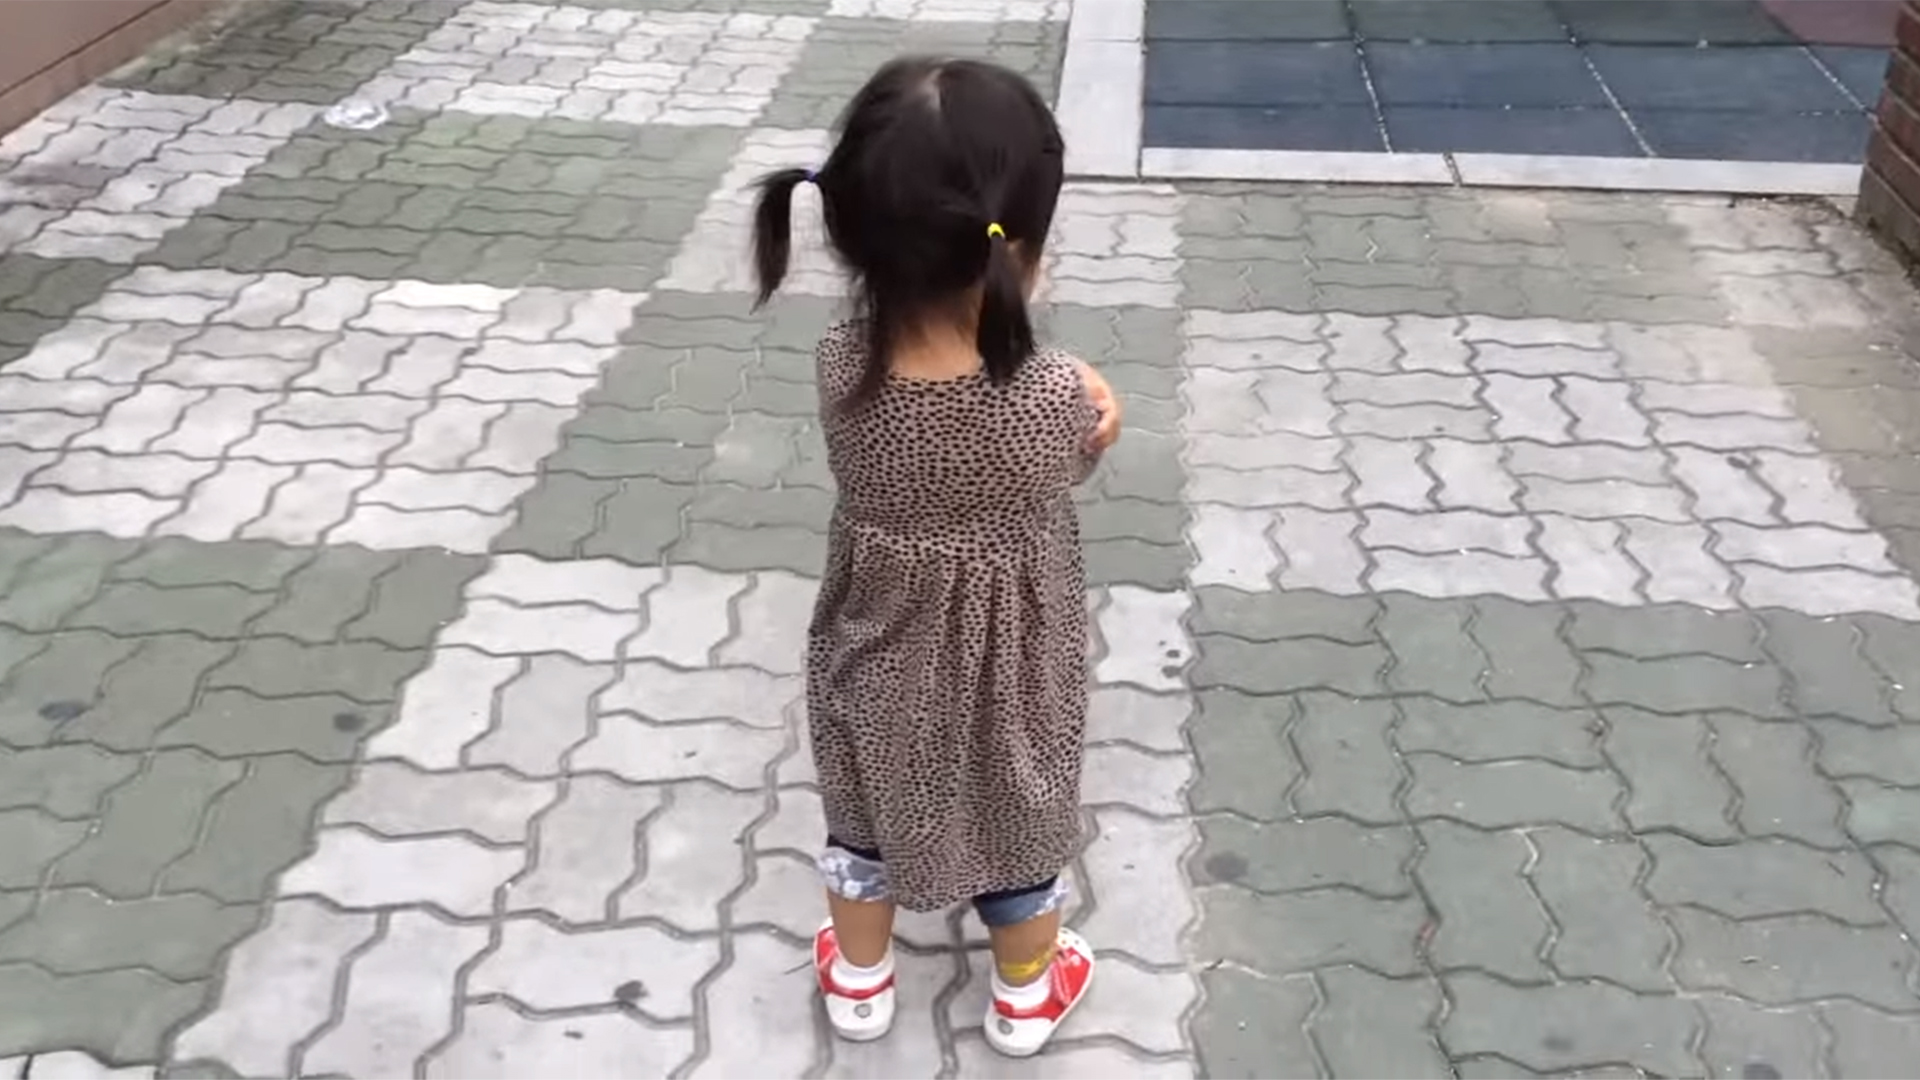 Squeaky shoes turn little girl s tantrum into smiles in adorable